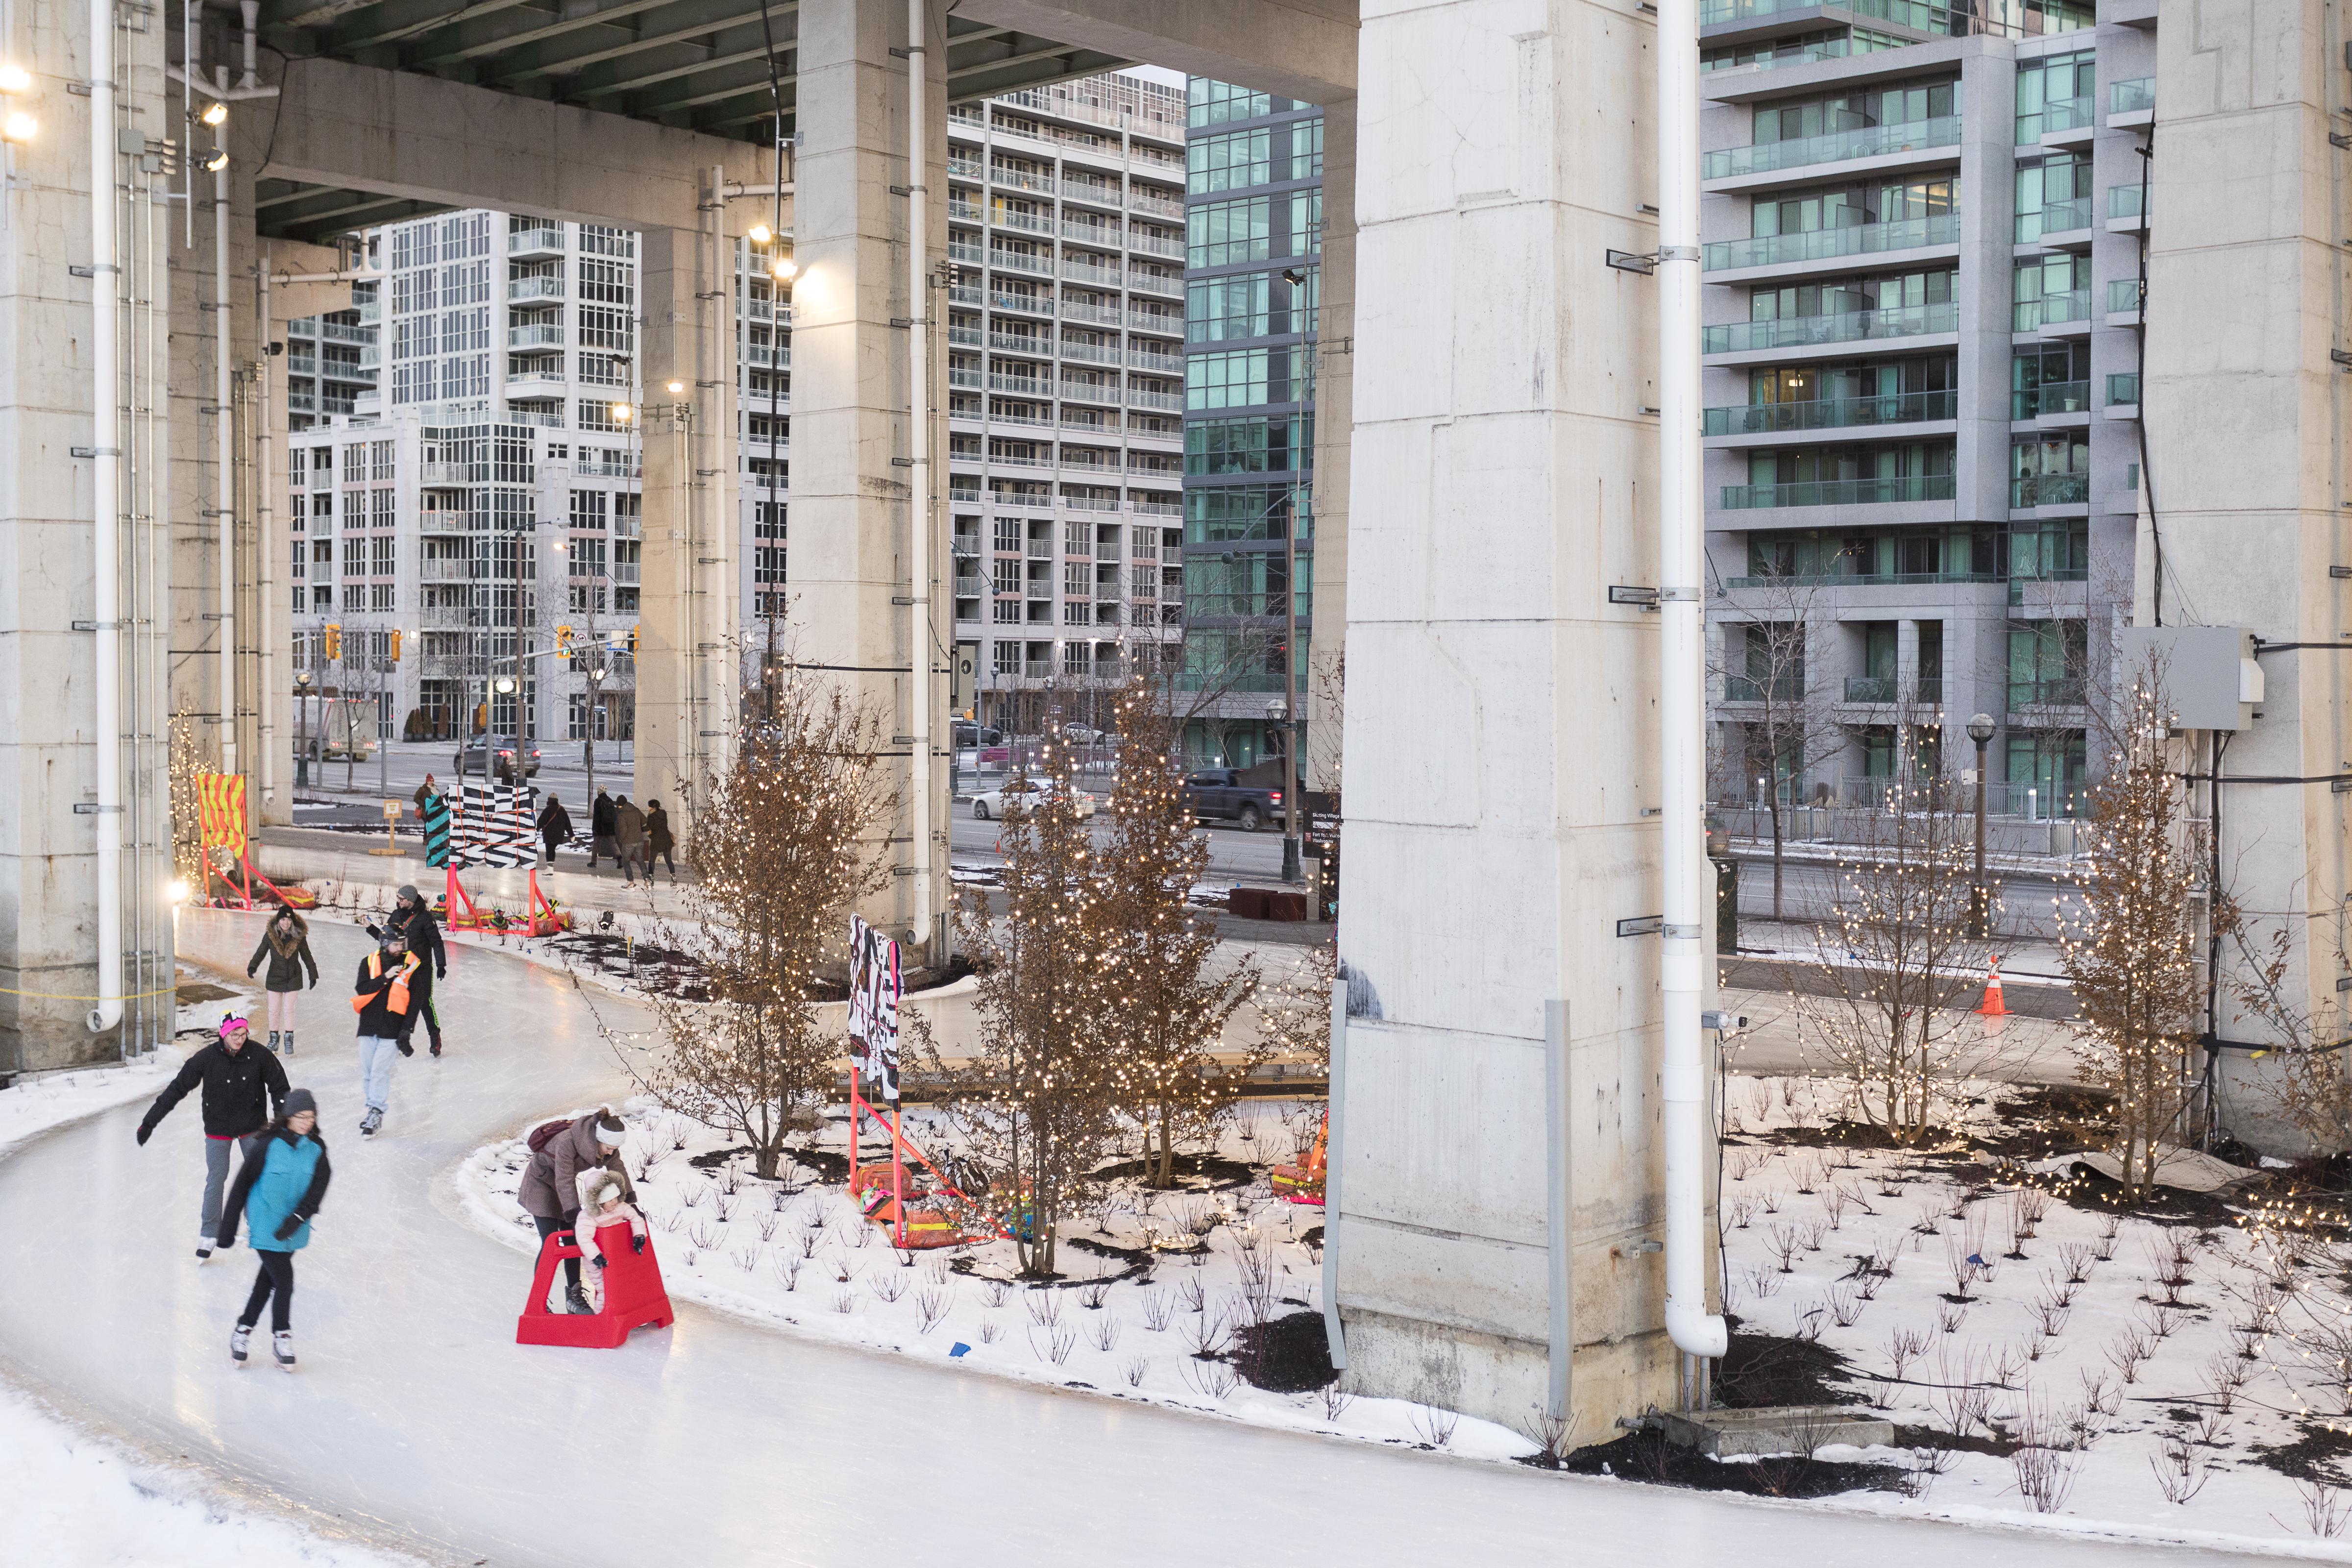 People ice skate along an ice path which is near a building with structural columns.